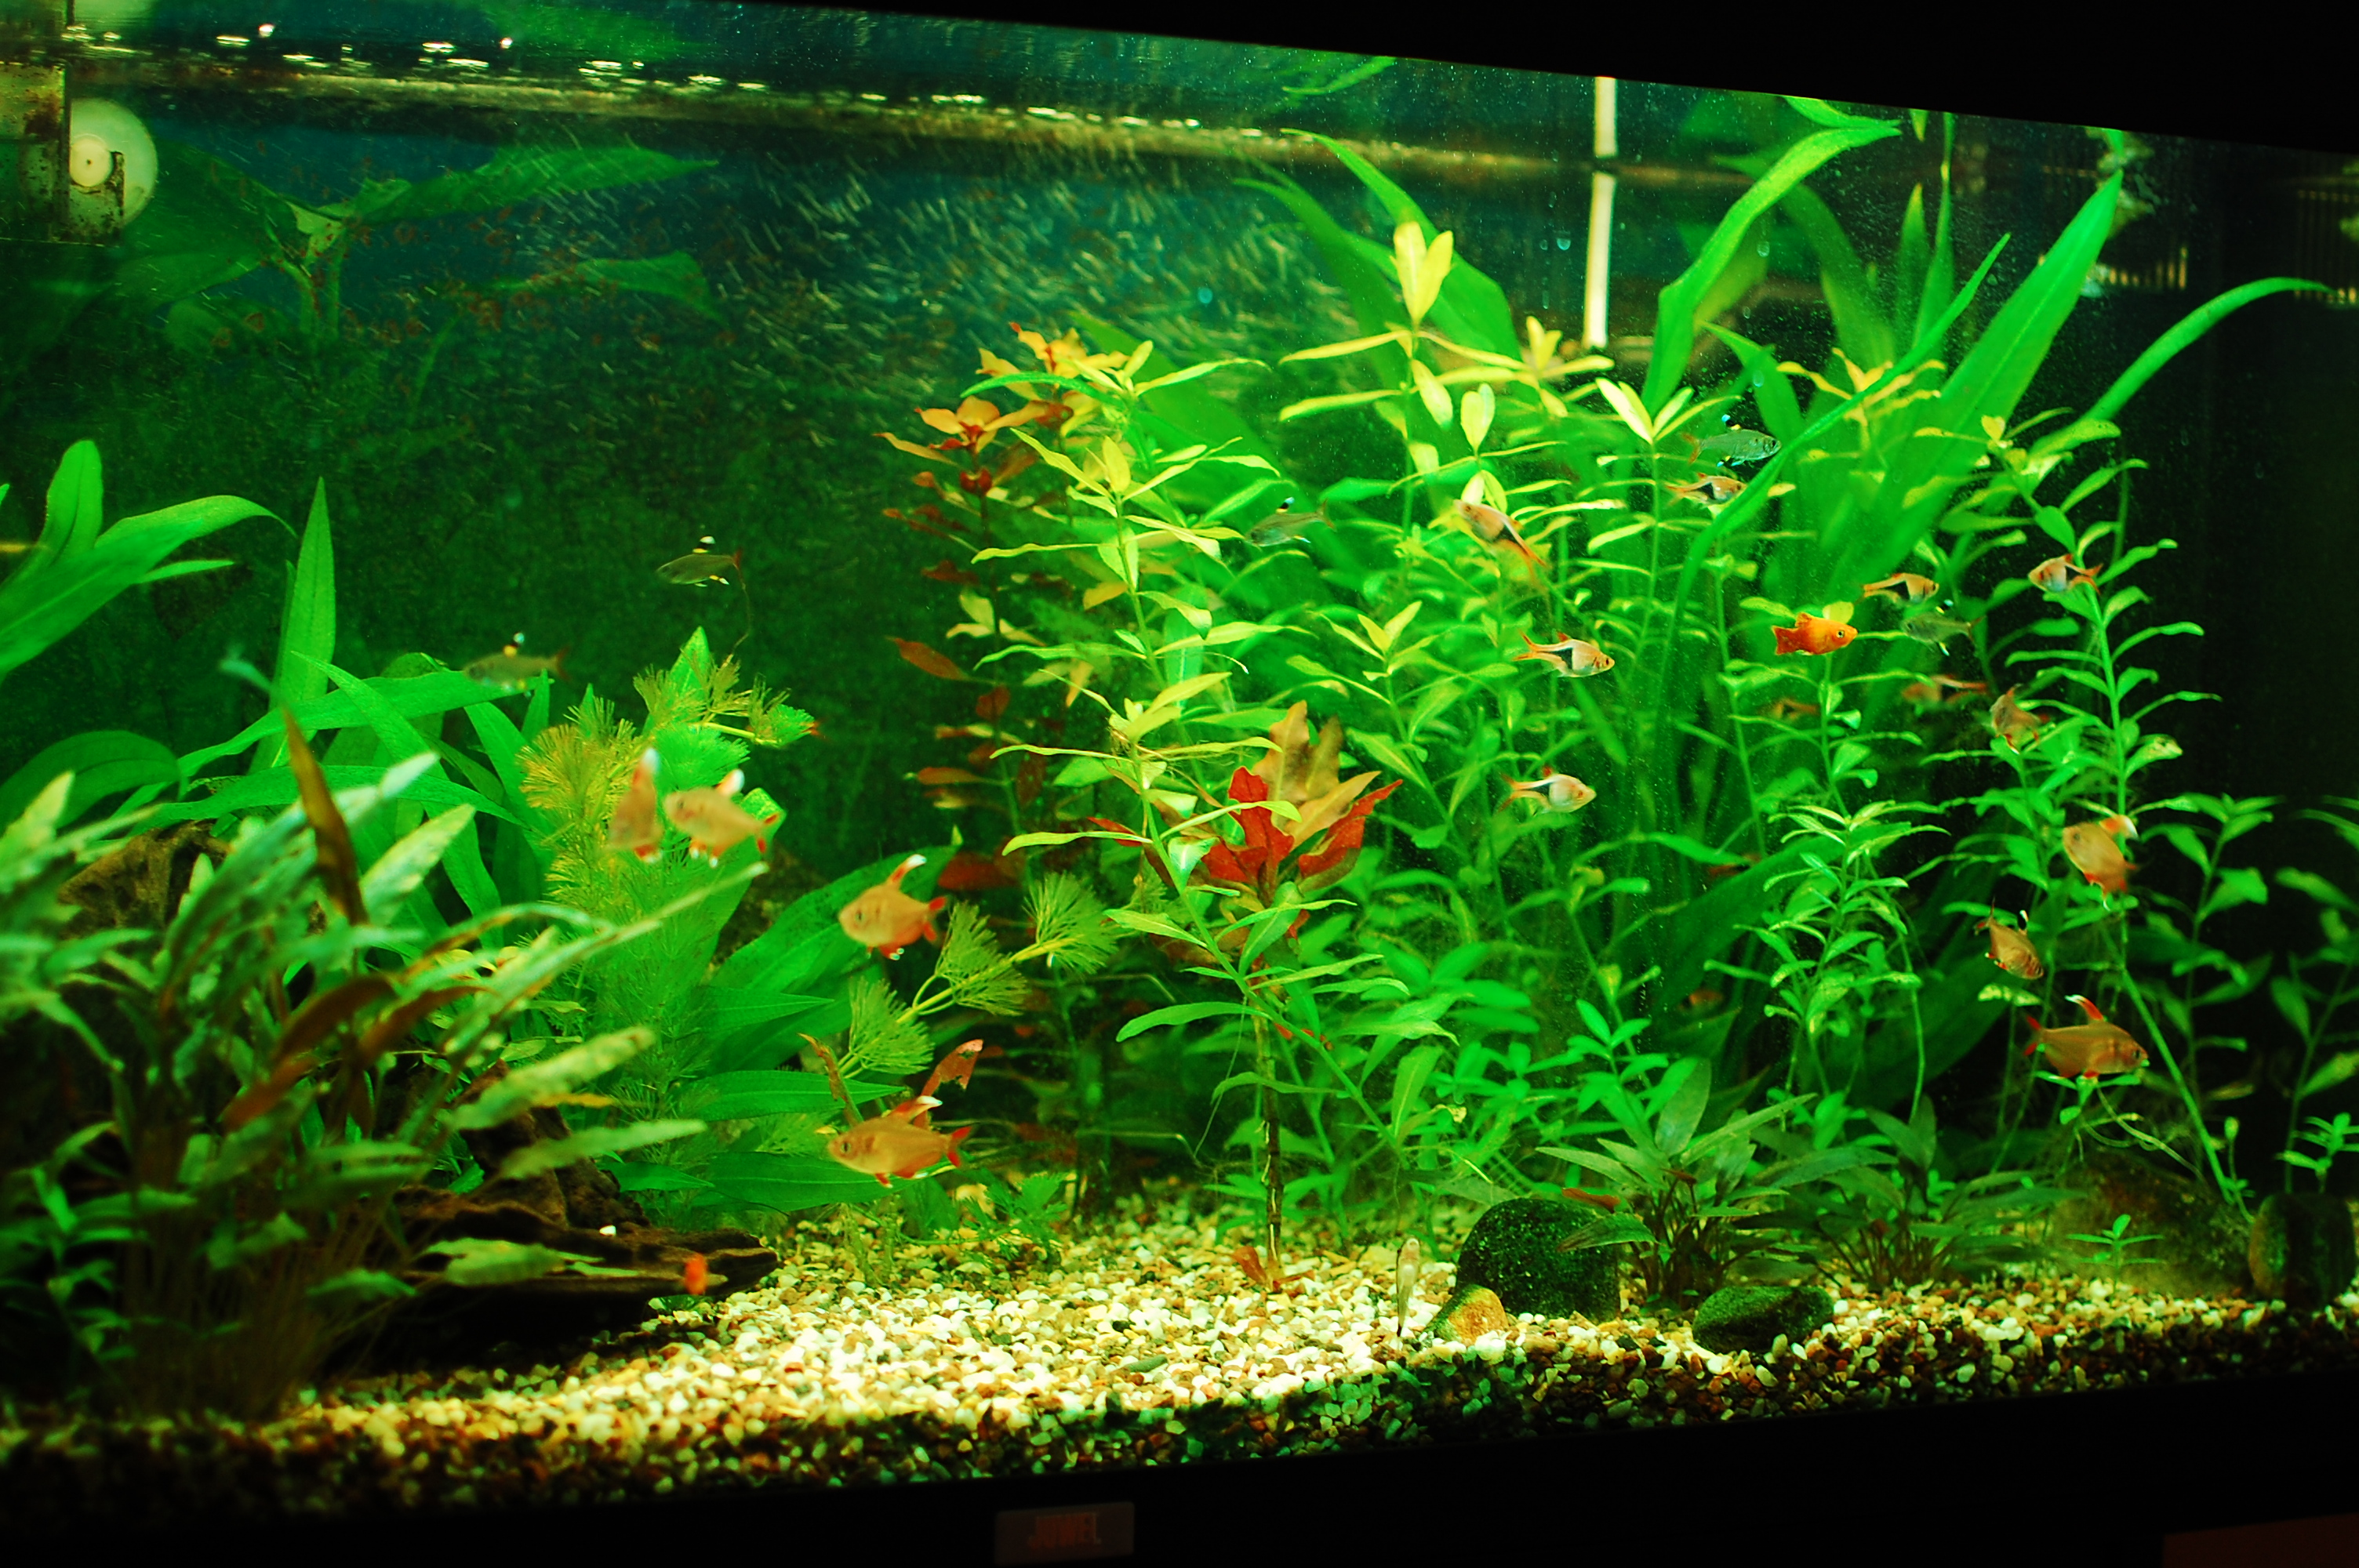 Freshwater aquarium freshwater aquarium talk for Coolest freshwater fish